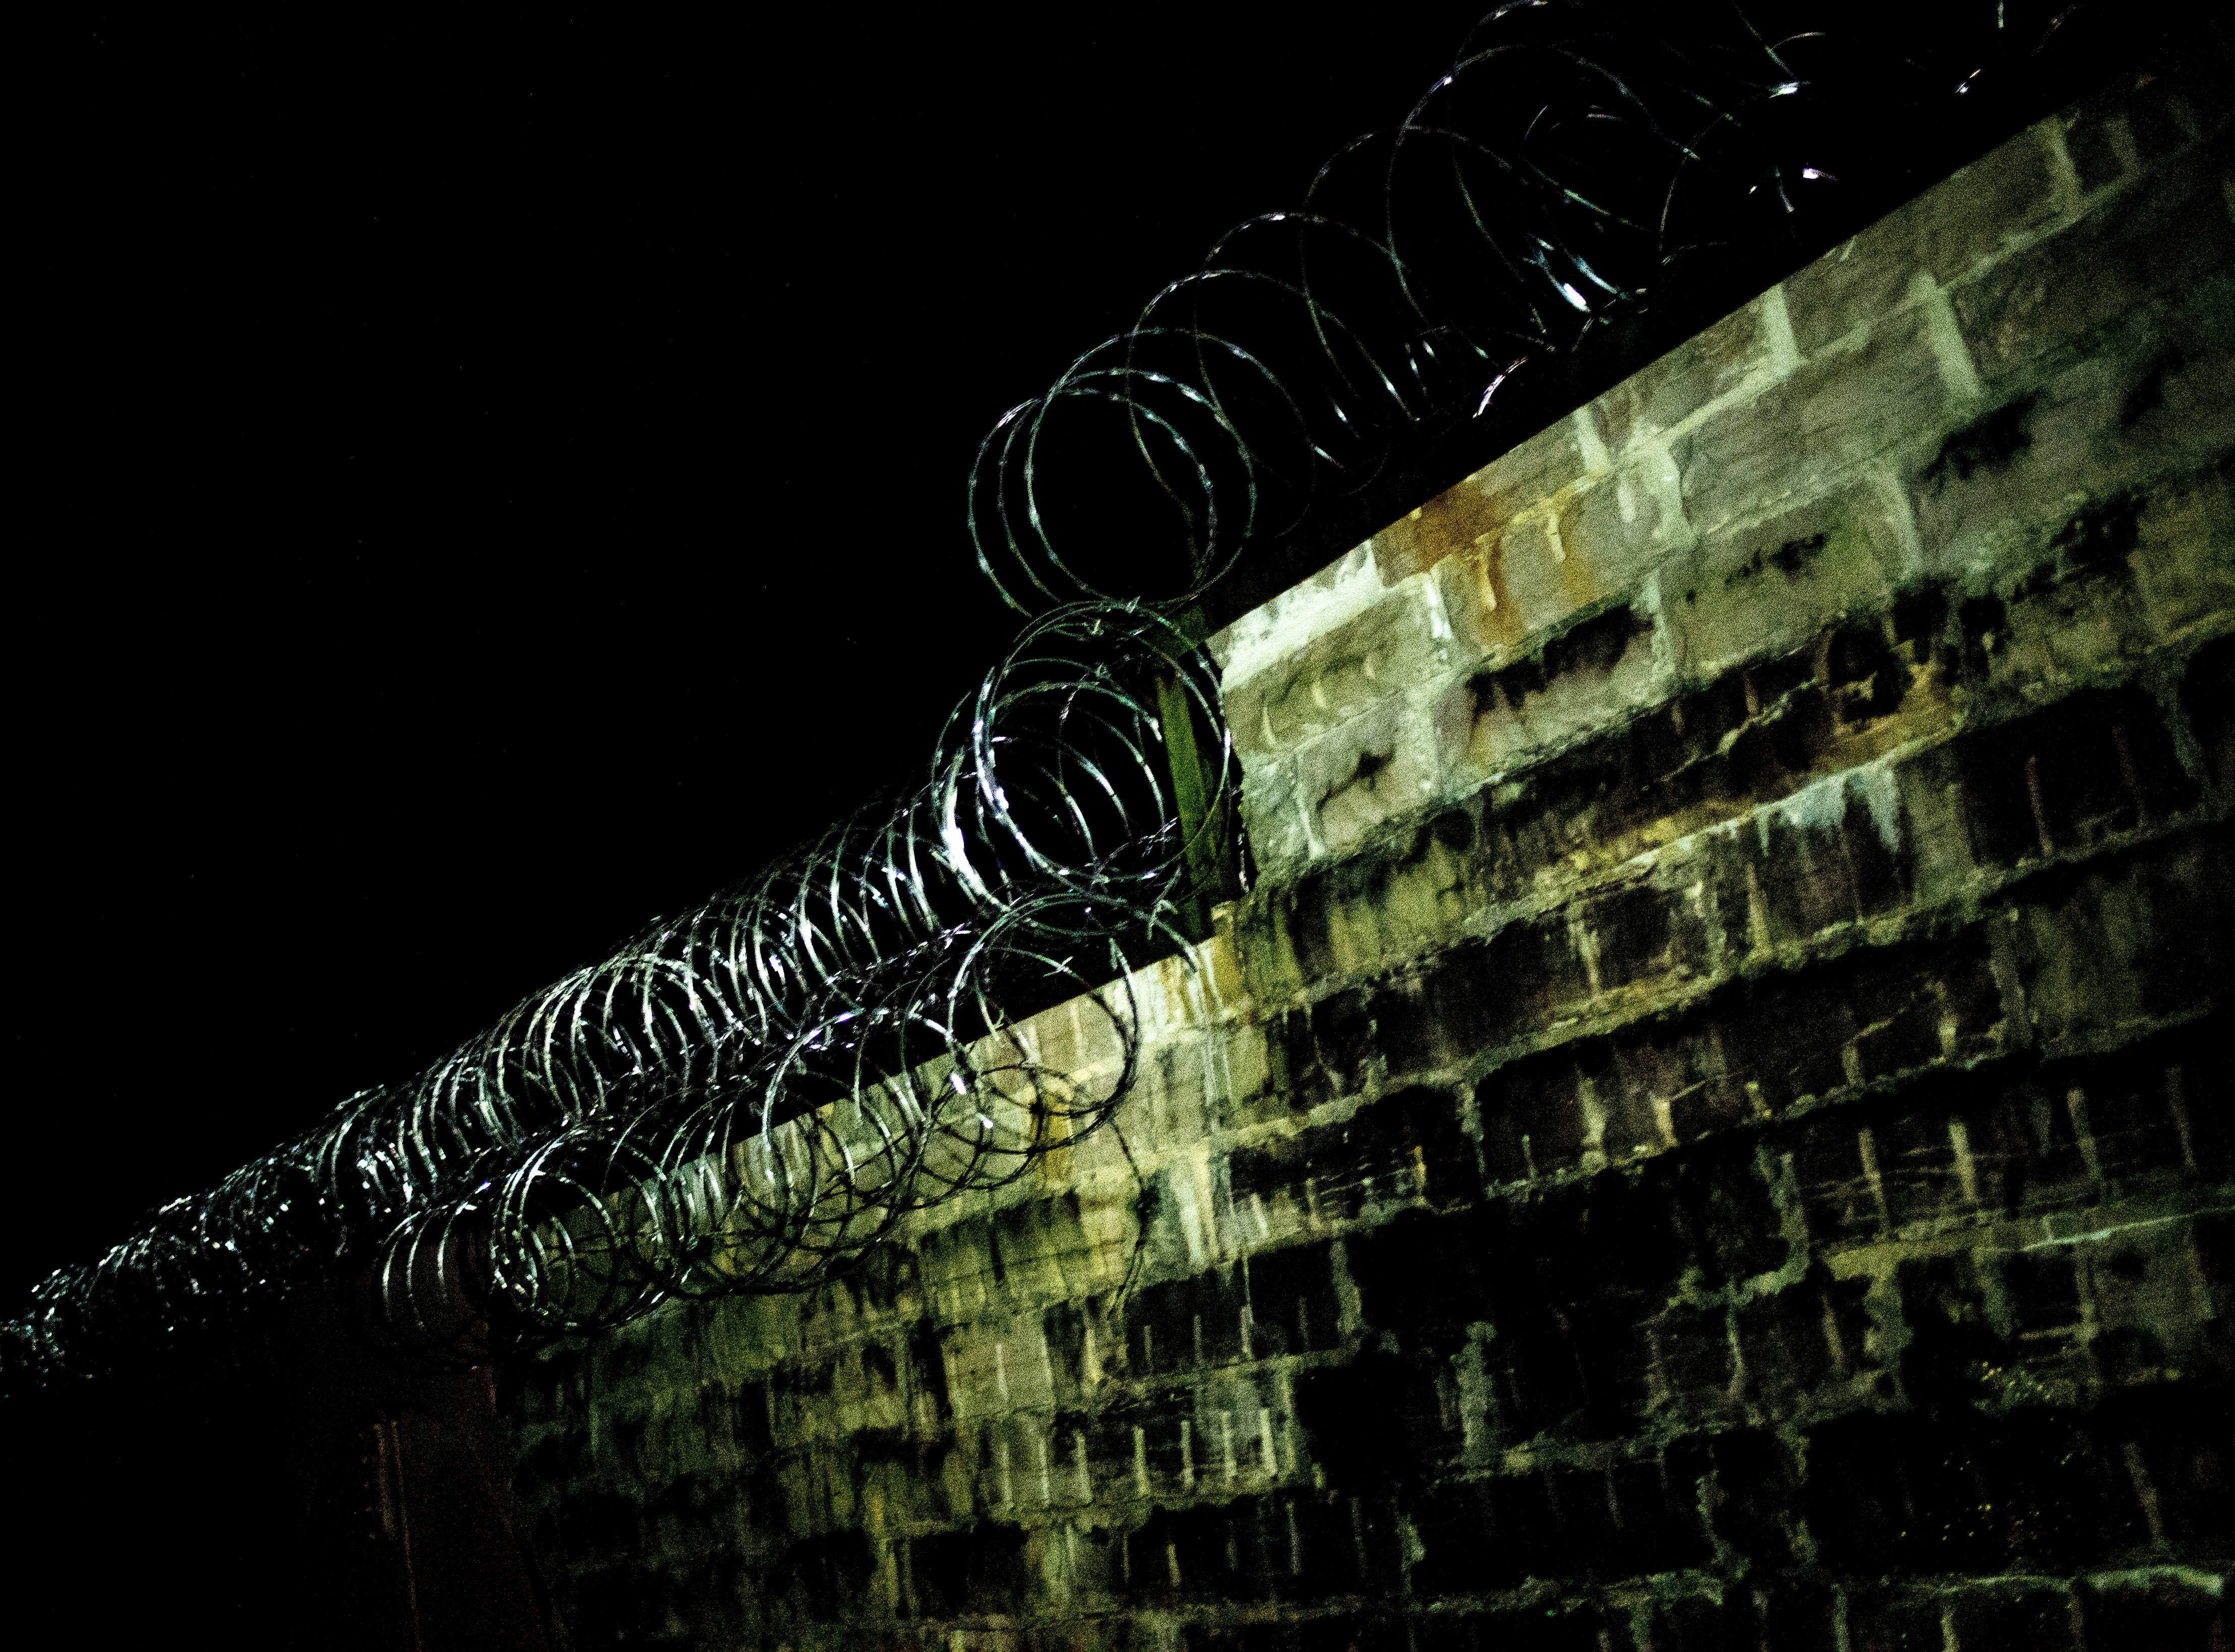 Barbed wire still surrounds the entire property during a paranormal flashlight tour of Brushy Mountain State Penitentiary in Petros, Tennessee on Tuesday, October 16, 2018.